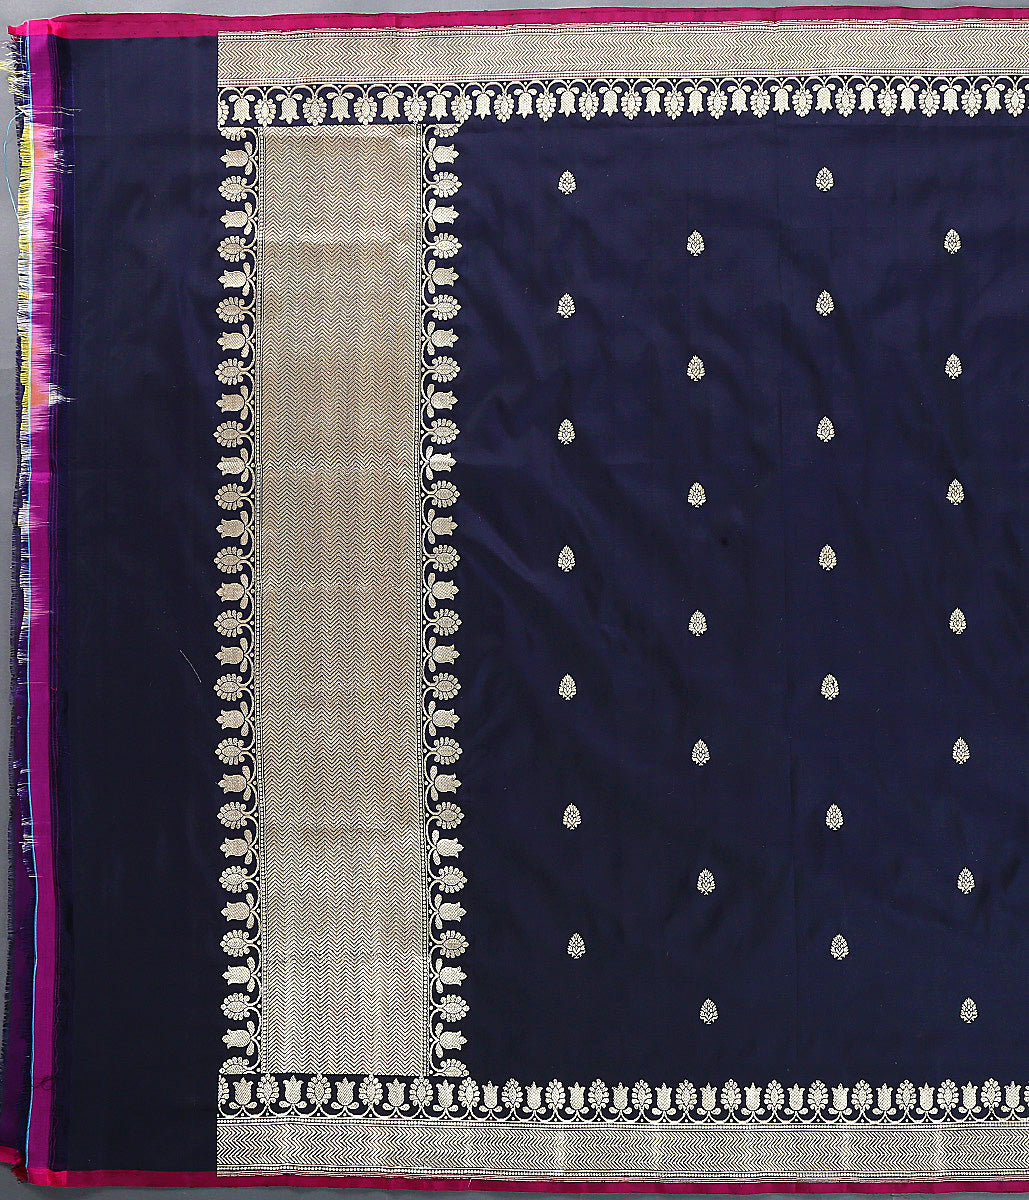 Black Kadhwa Booti katan silk dupatta with pink selvedge